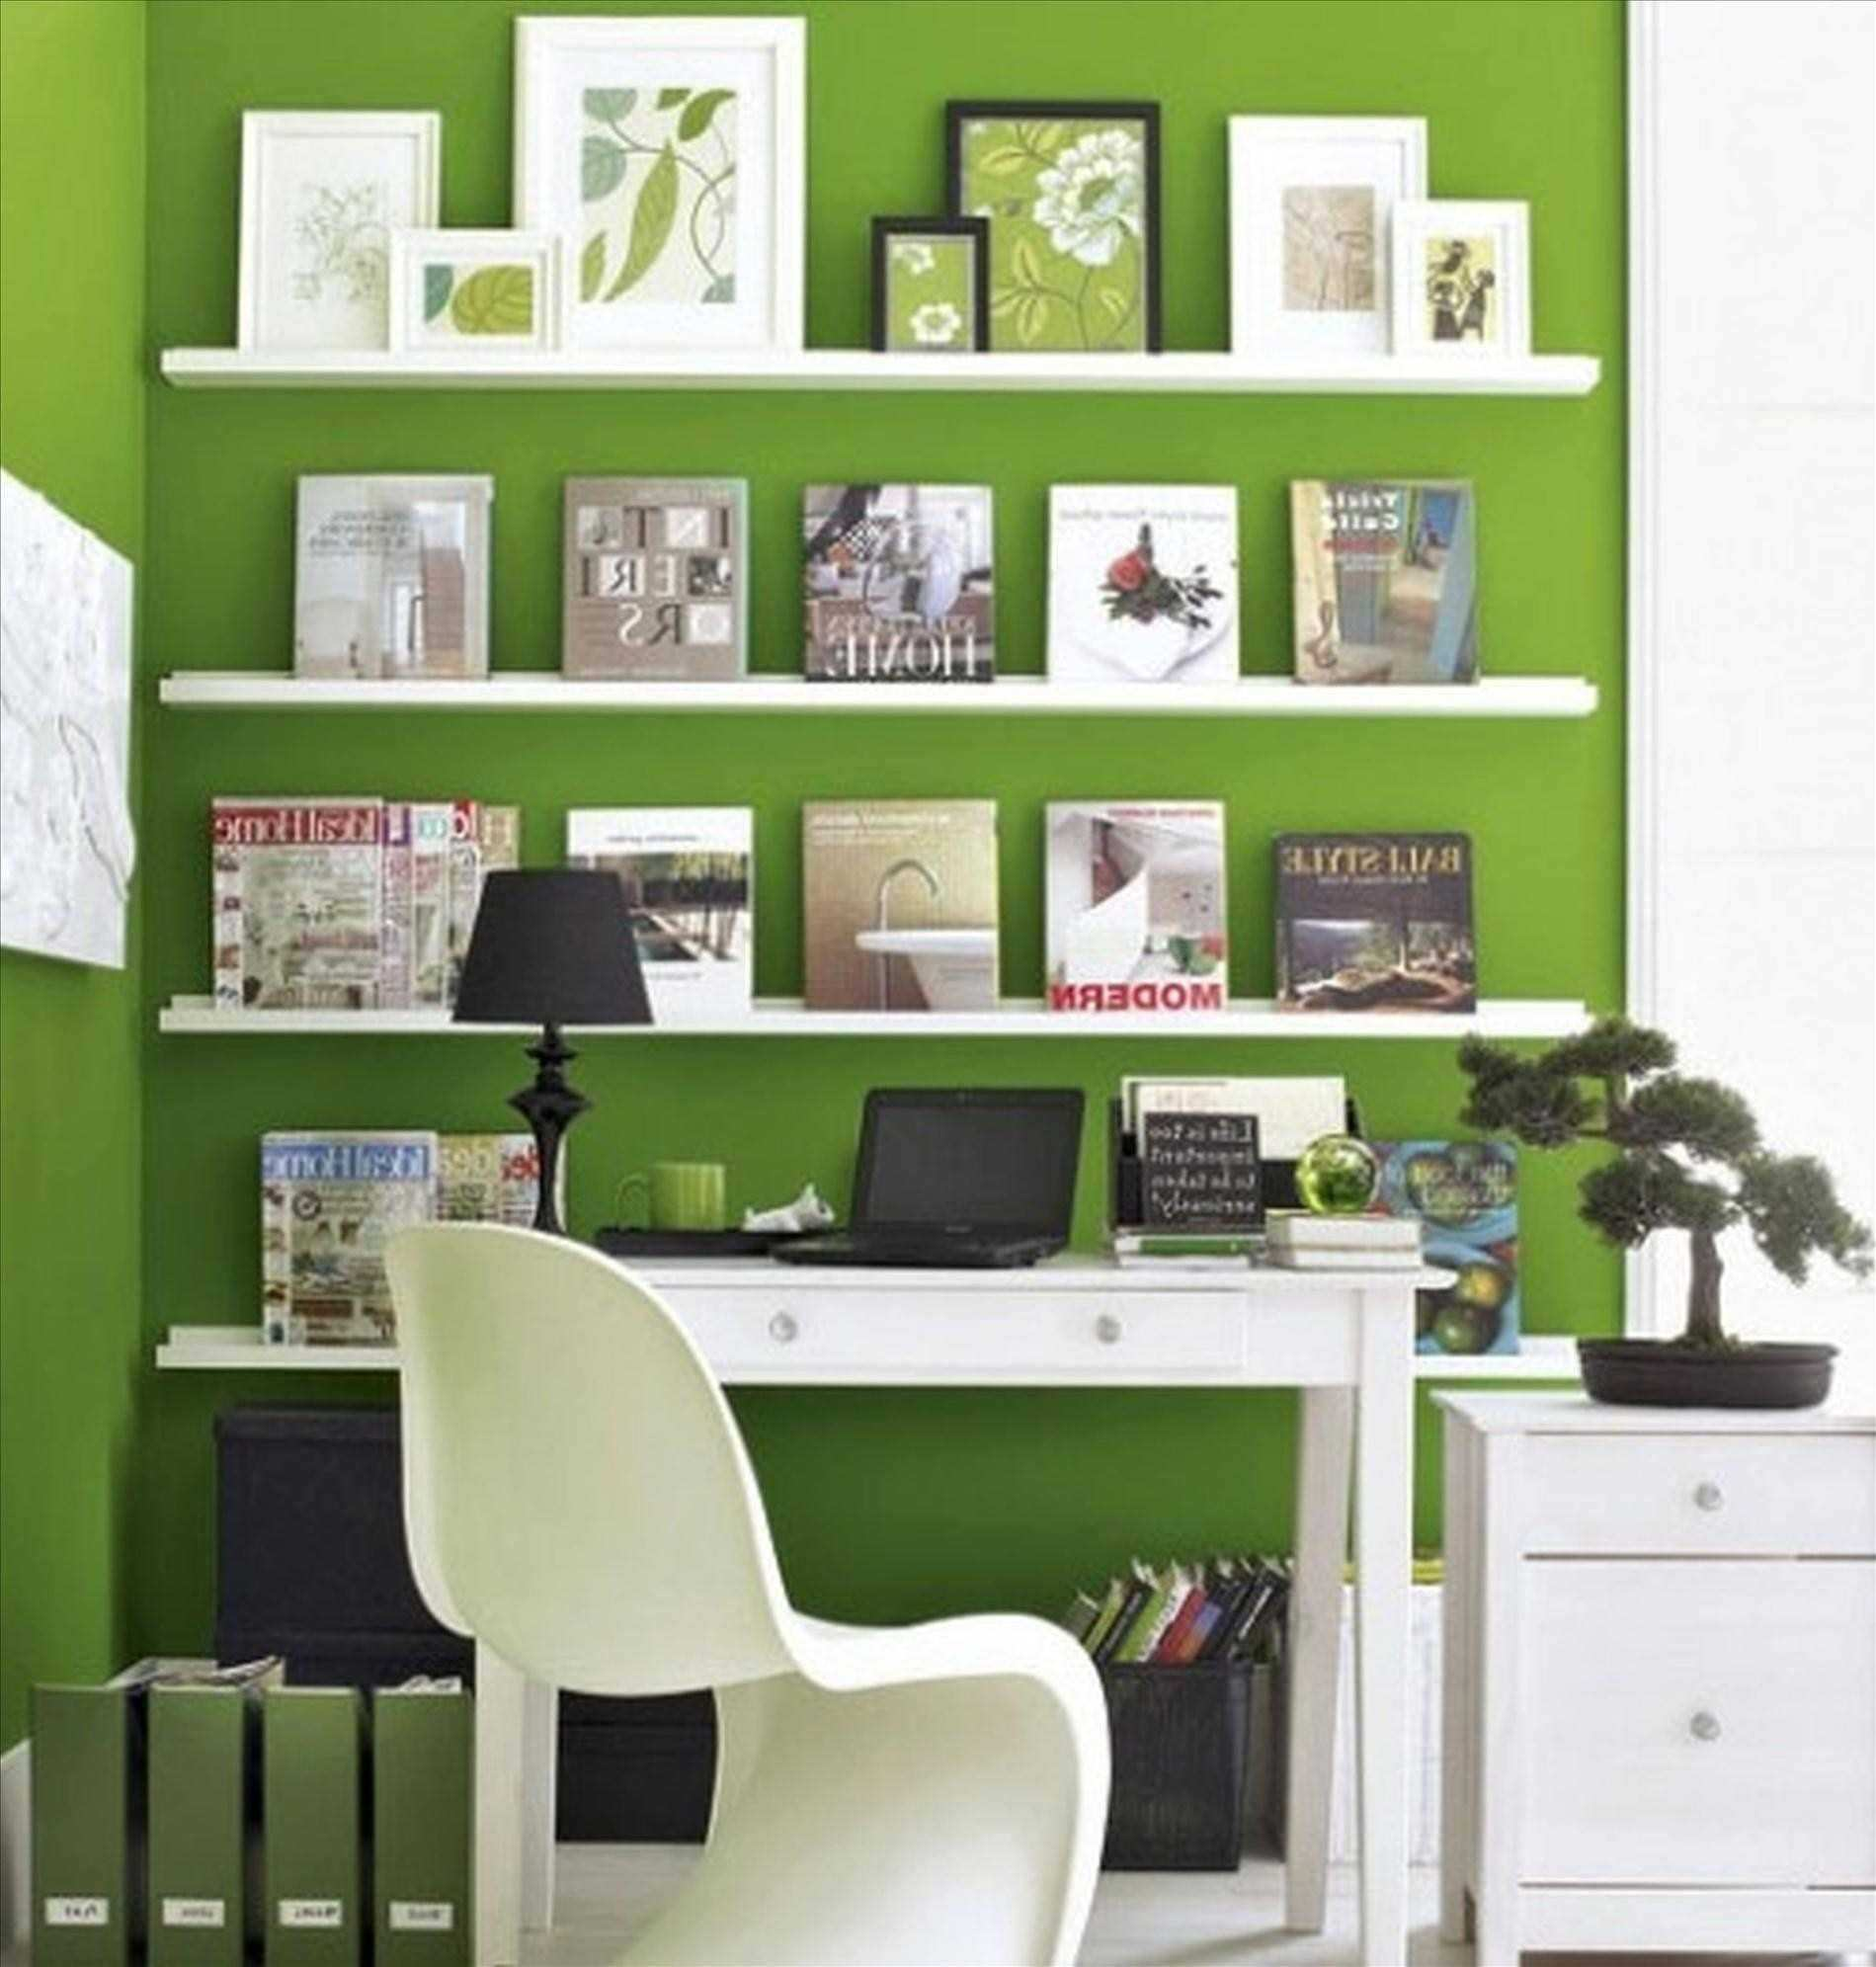 Office Pictures for Walls Elegant Business Fice Wall Decorating Ideas